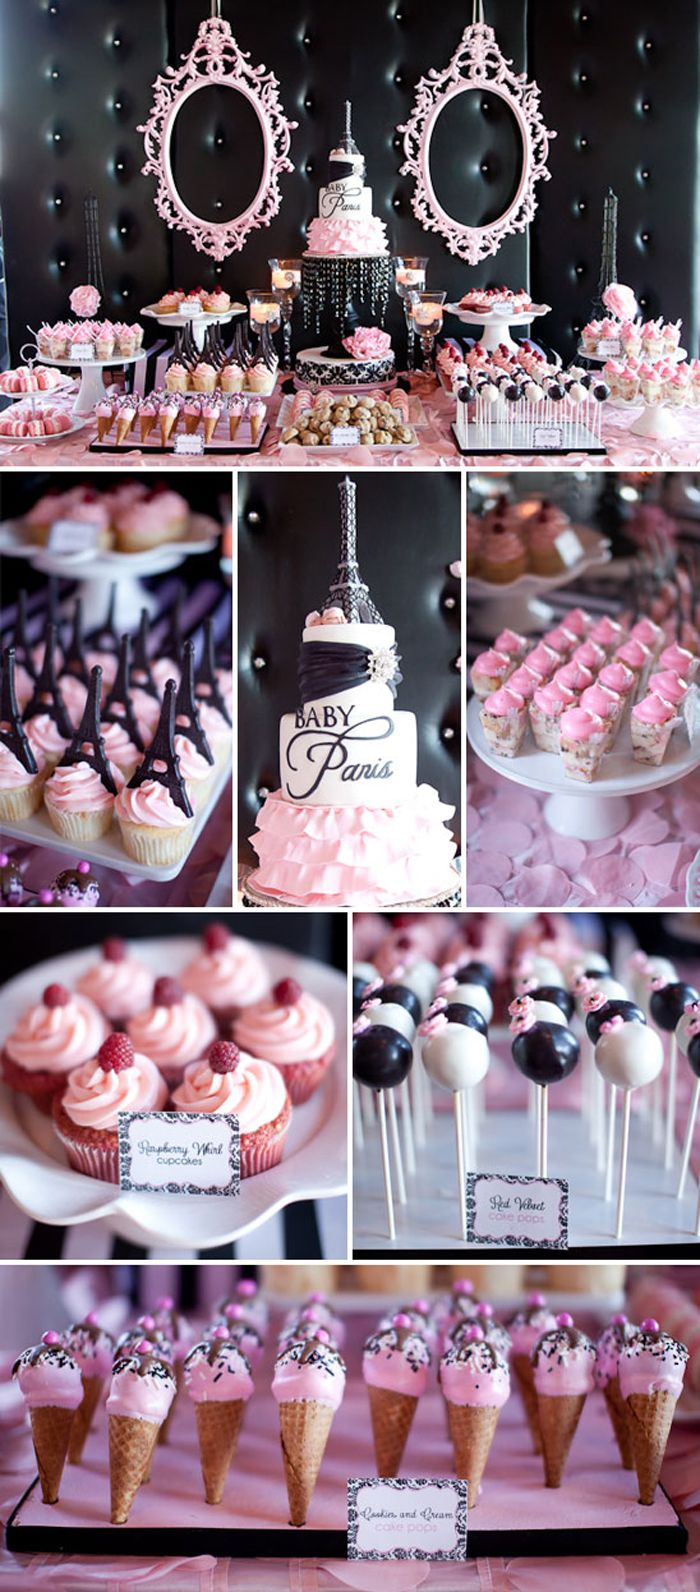 Paris Themed Baby Shower...would Be Amazing For MY Future Bridal Shower